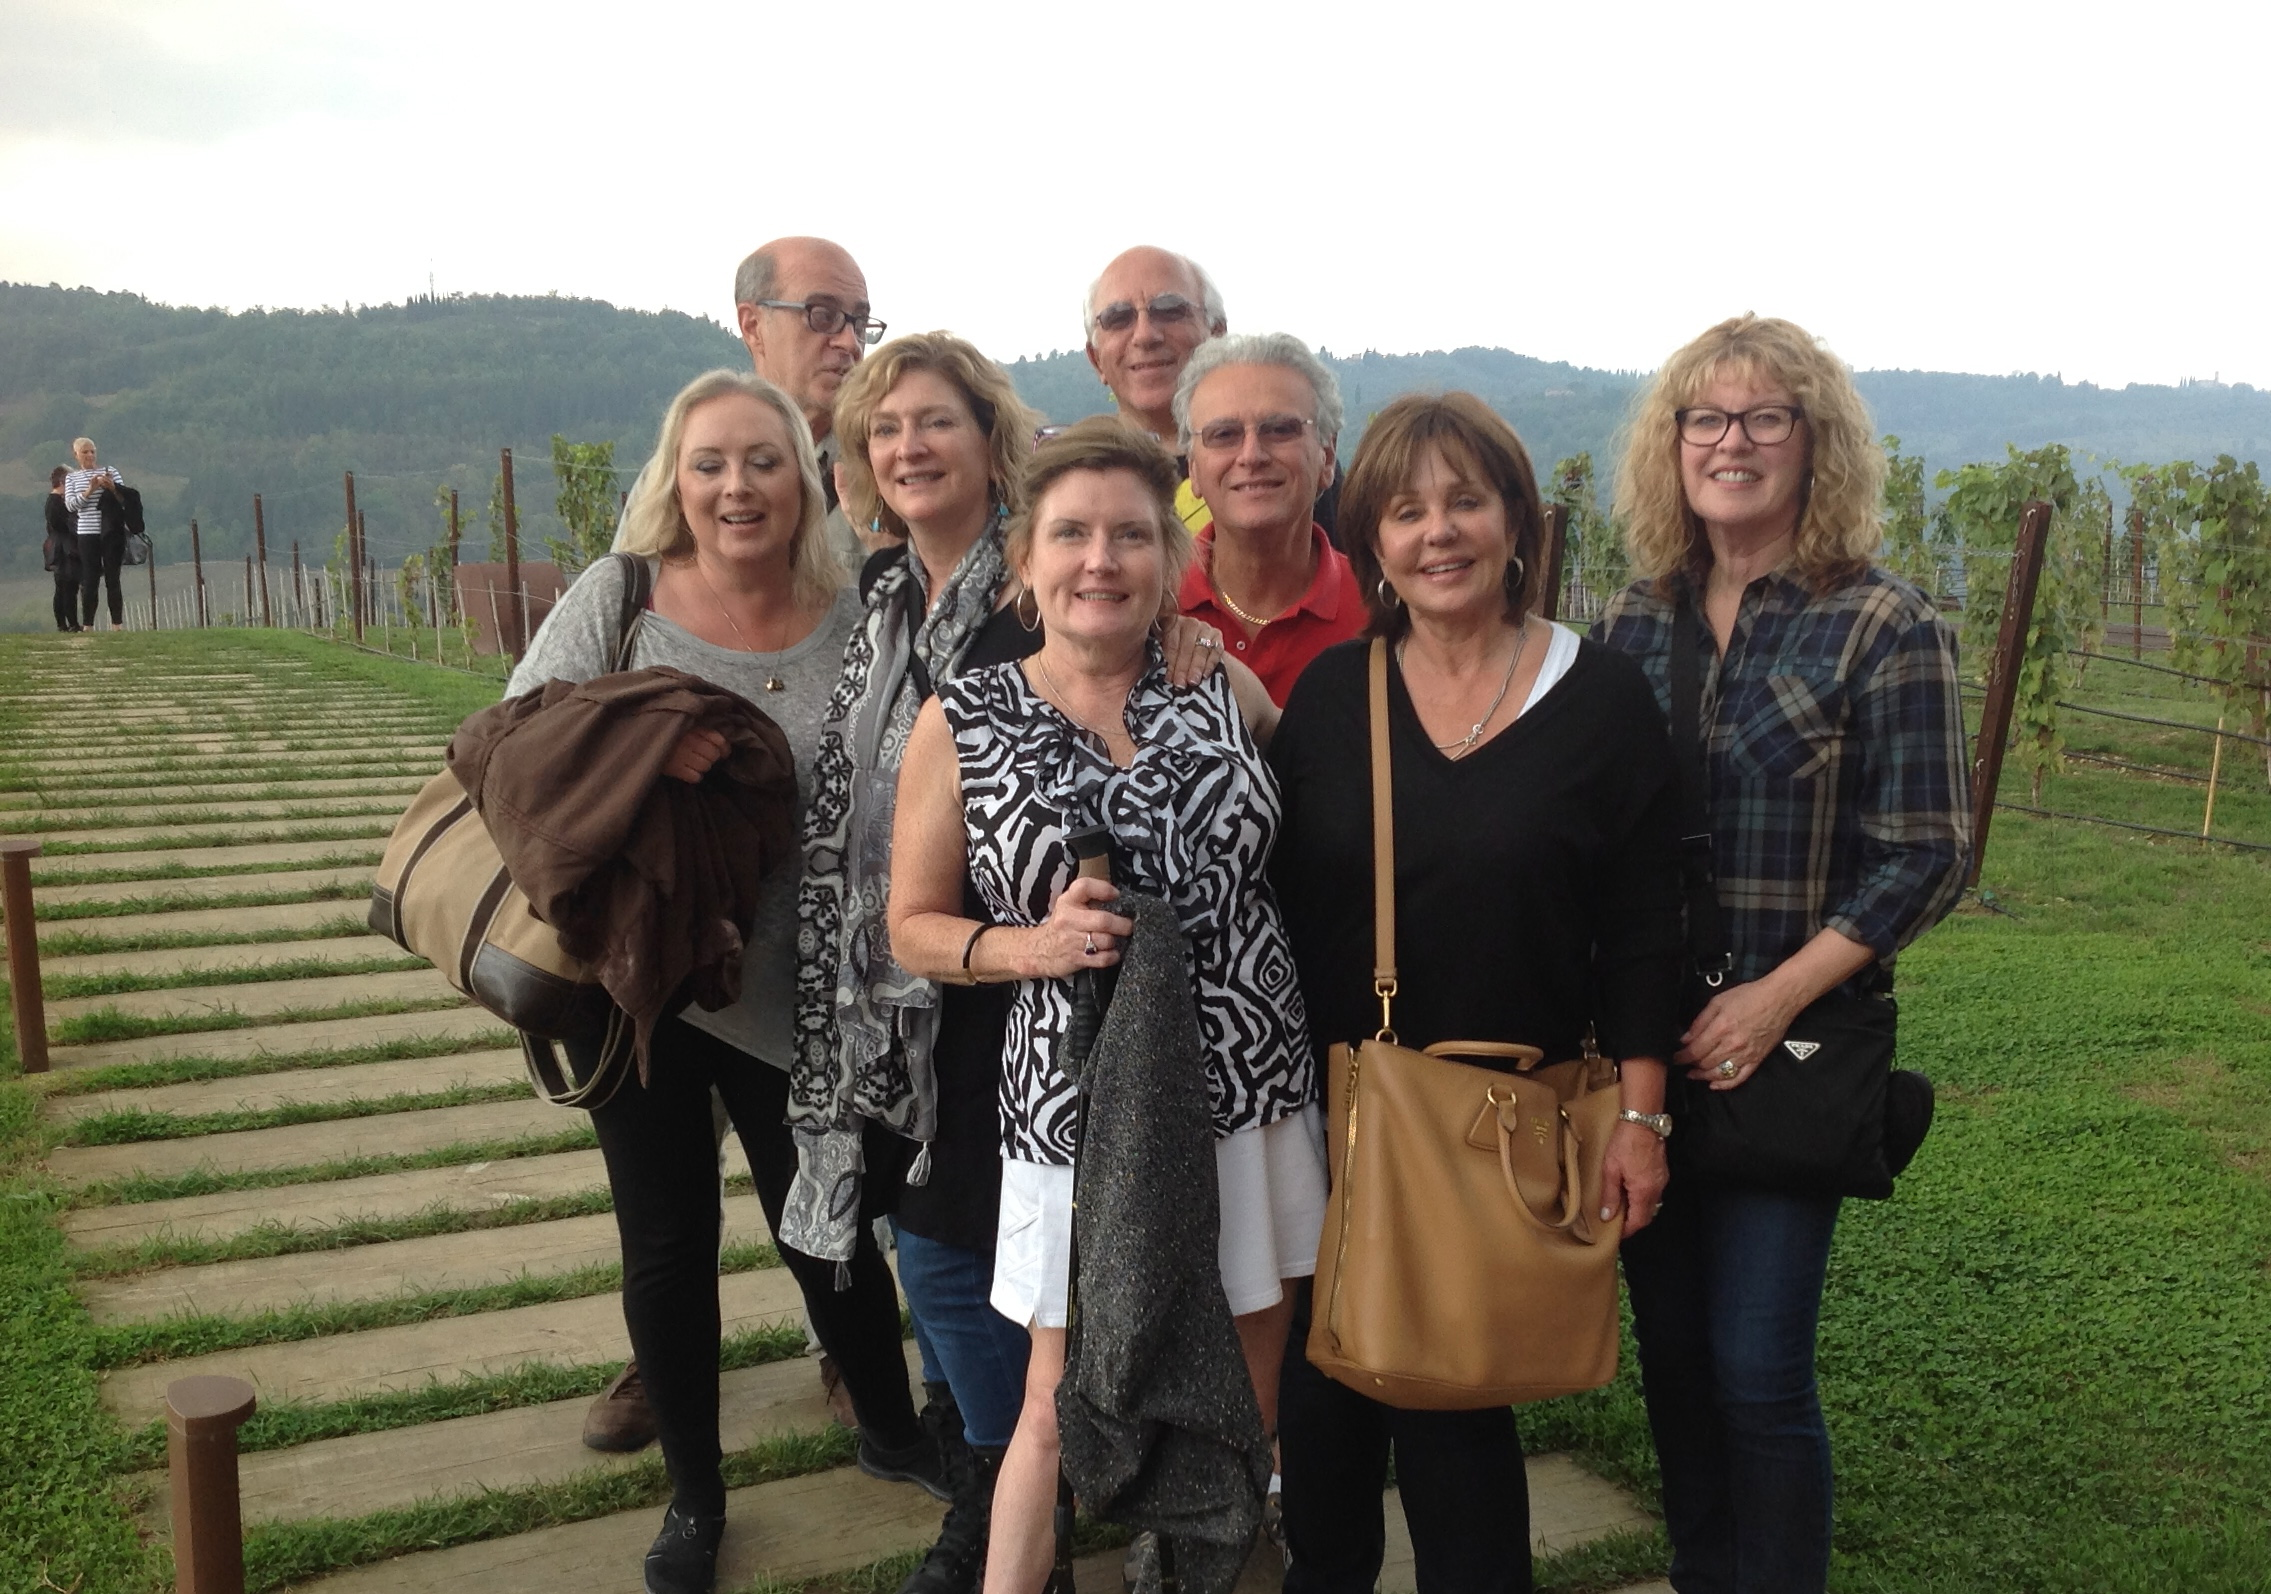 Post-lunch (three courses with paired wines and vin santo for dessert), the group prepares to descend six stories underground to tour the Cantina Antinori winery.